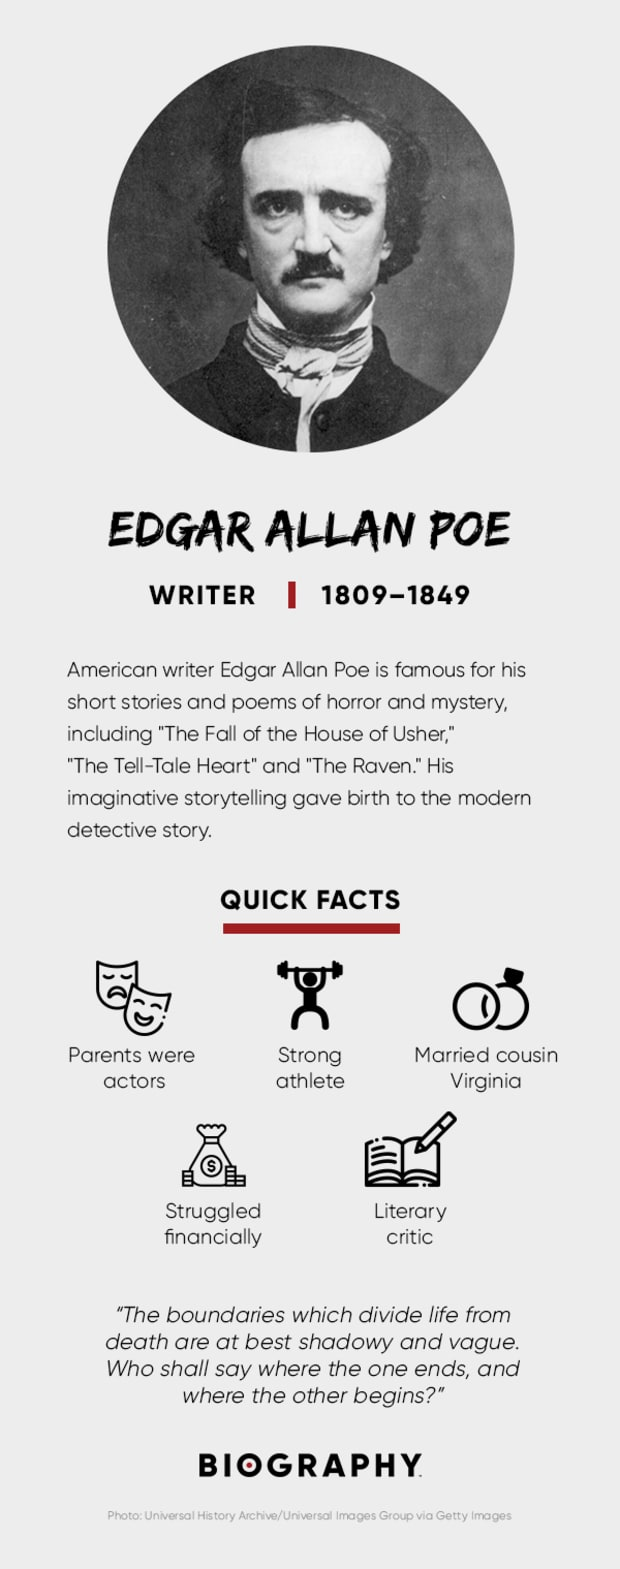 Edgar Allan Poe - Poems, The Raven & Quotes - Biography